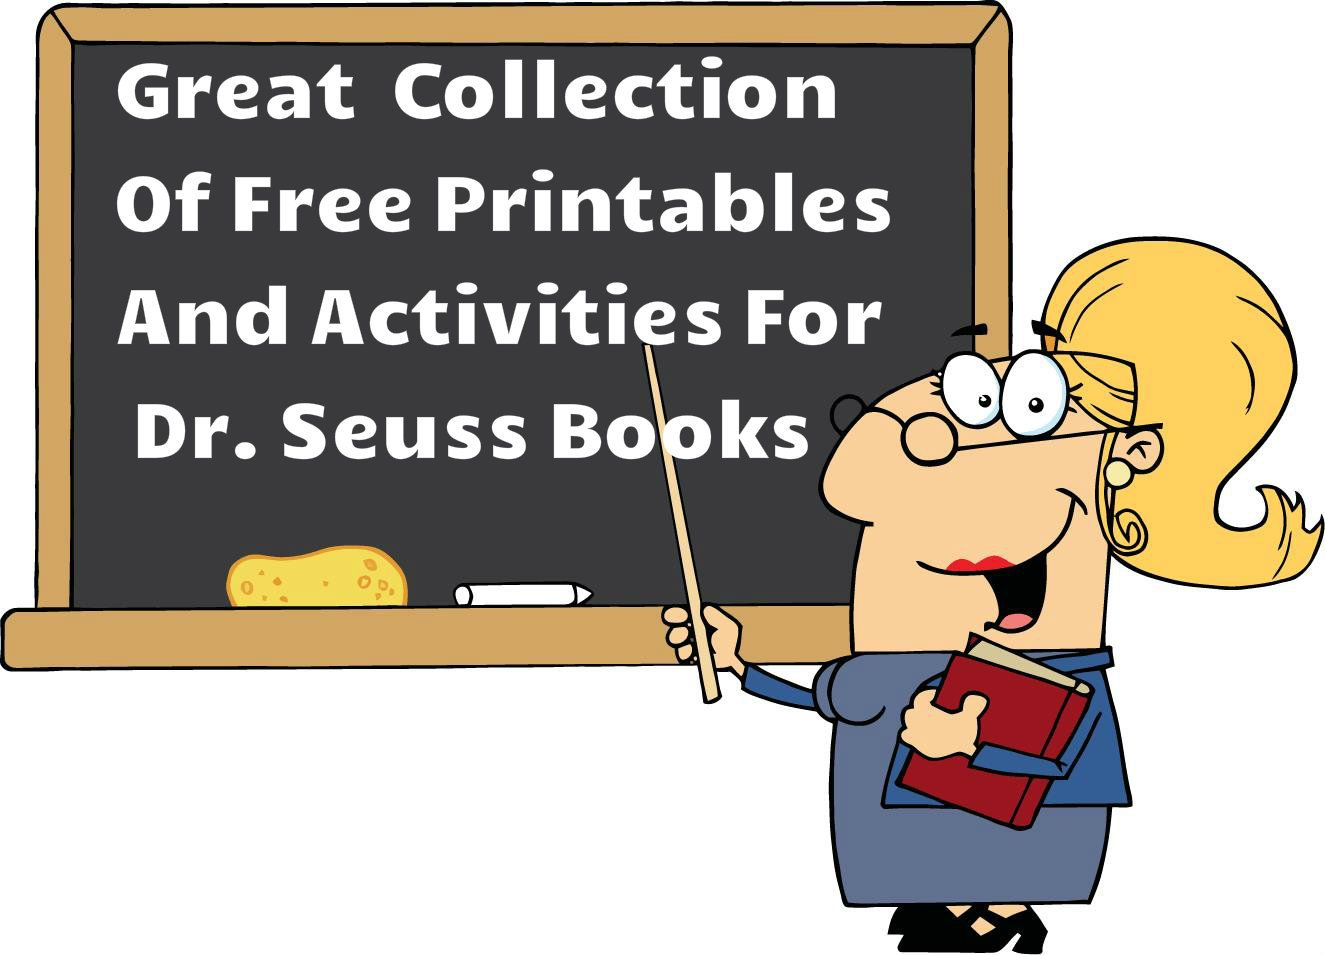 Great Collection Of Printables And Activities To Go Along